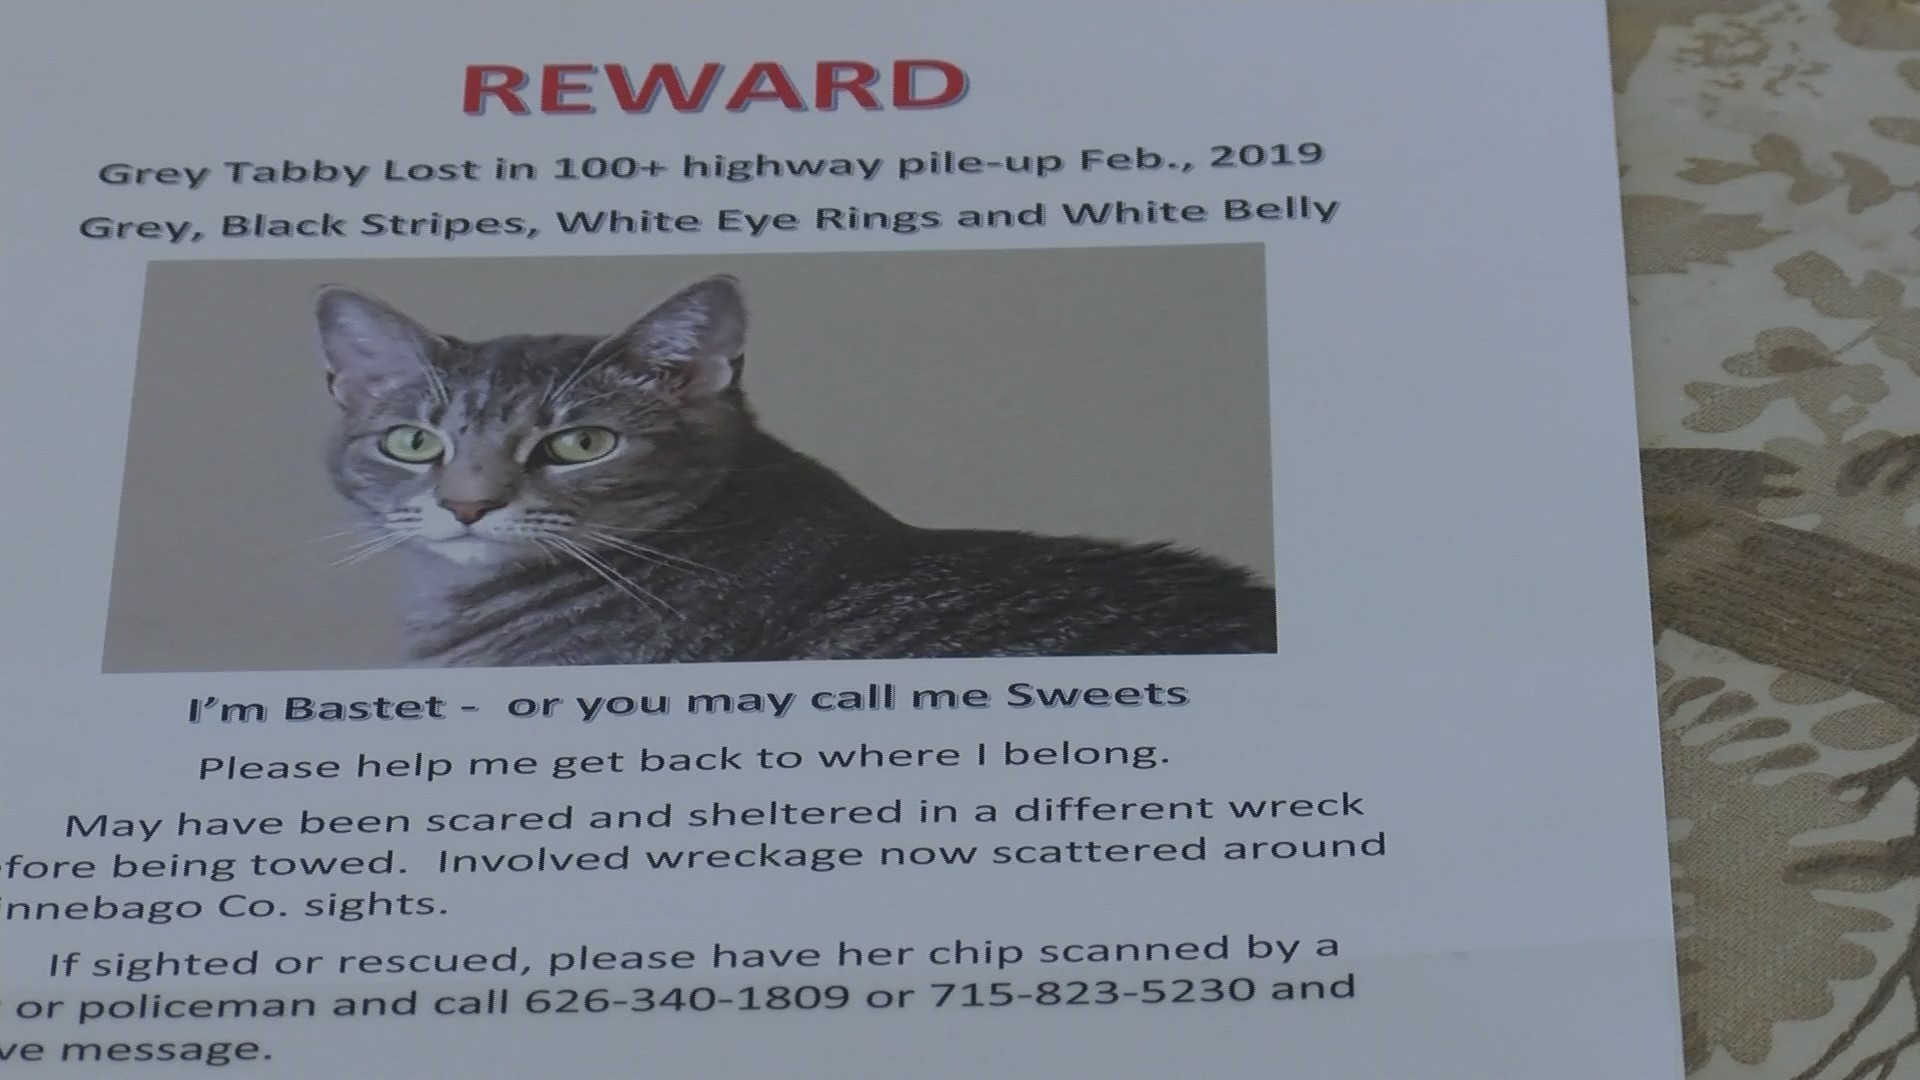 Family Searches for Cat After Pileup